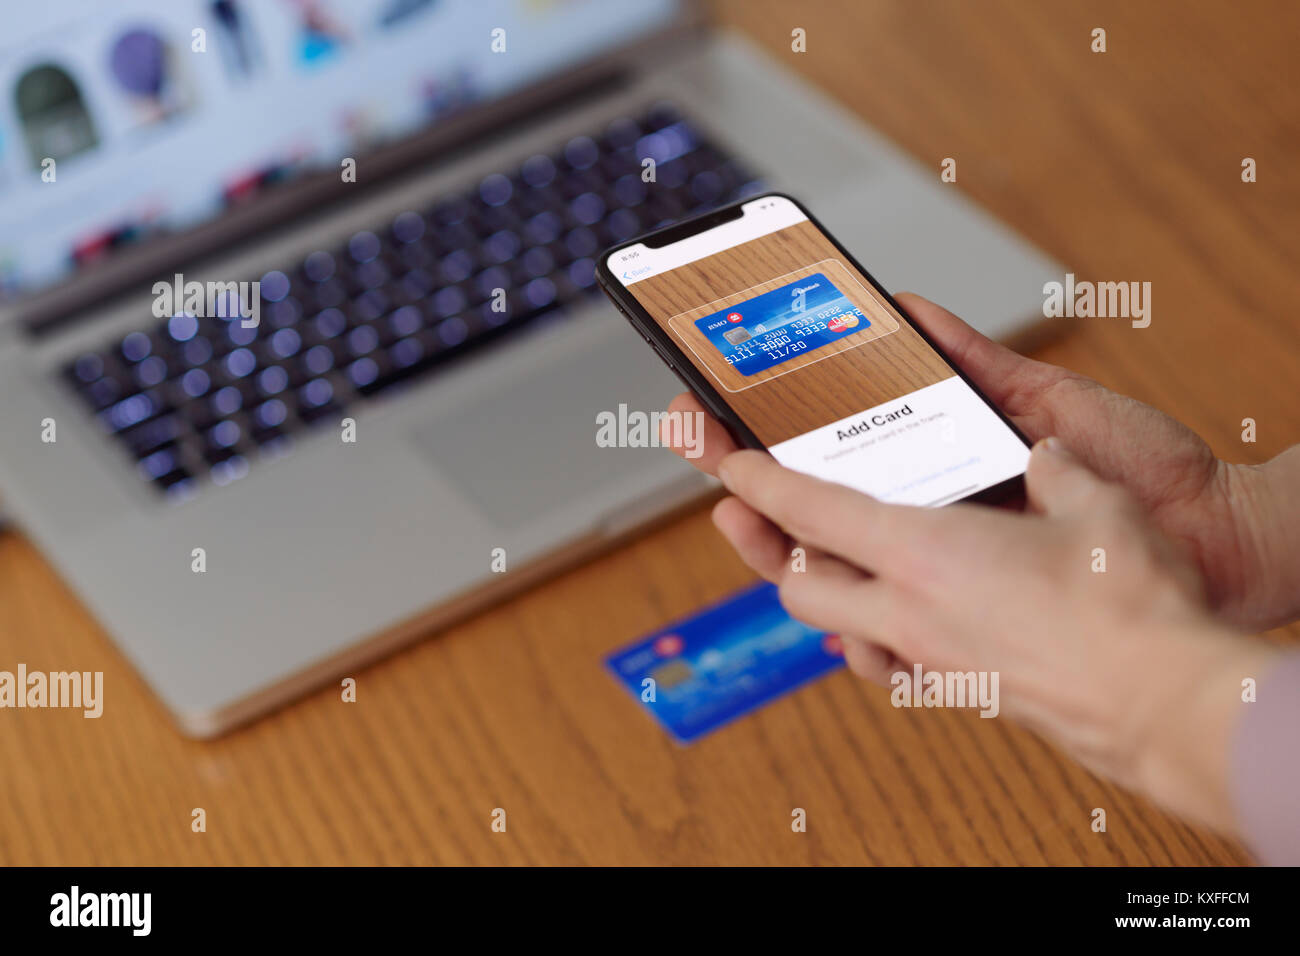 Woman with iPhone X in her hand scanning a credit card with Apple Pay, Apple Wallet electronic payment app Stock Photo